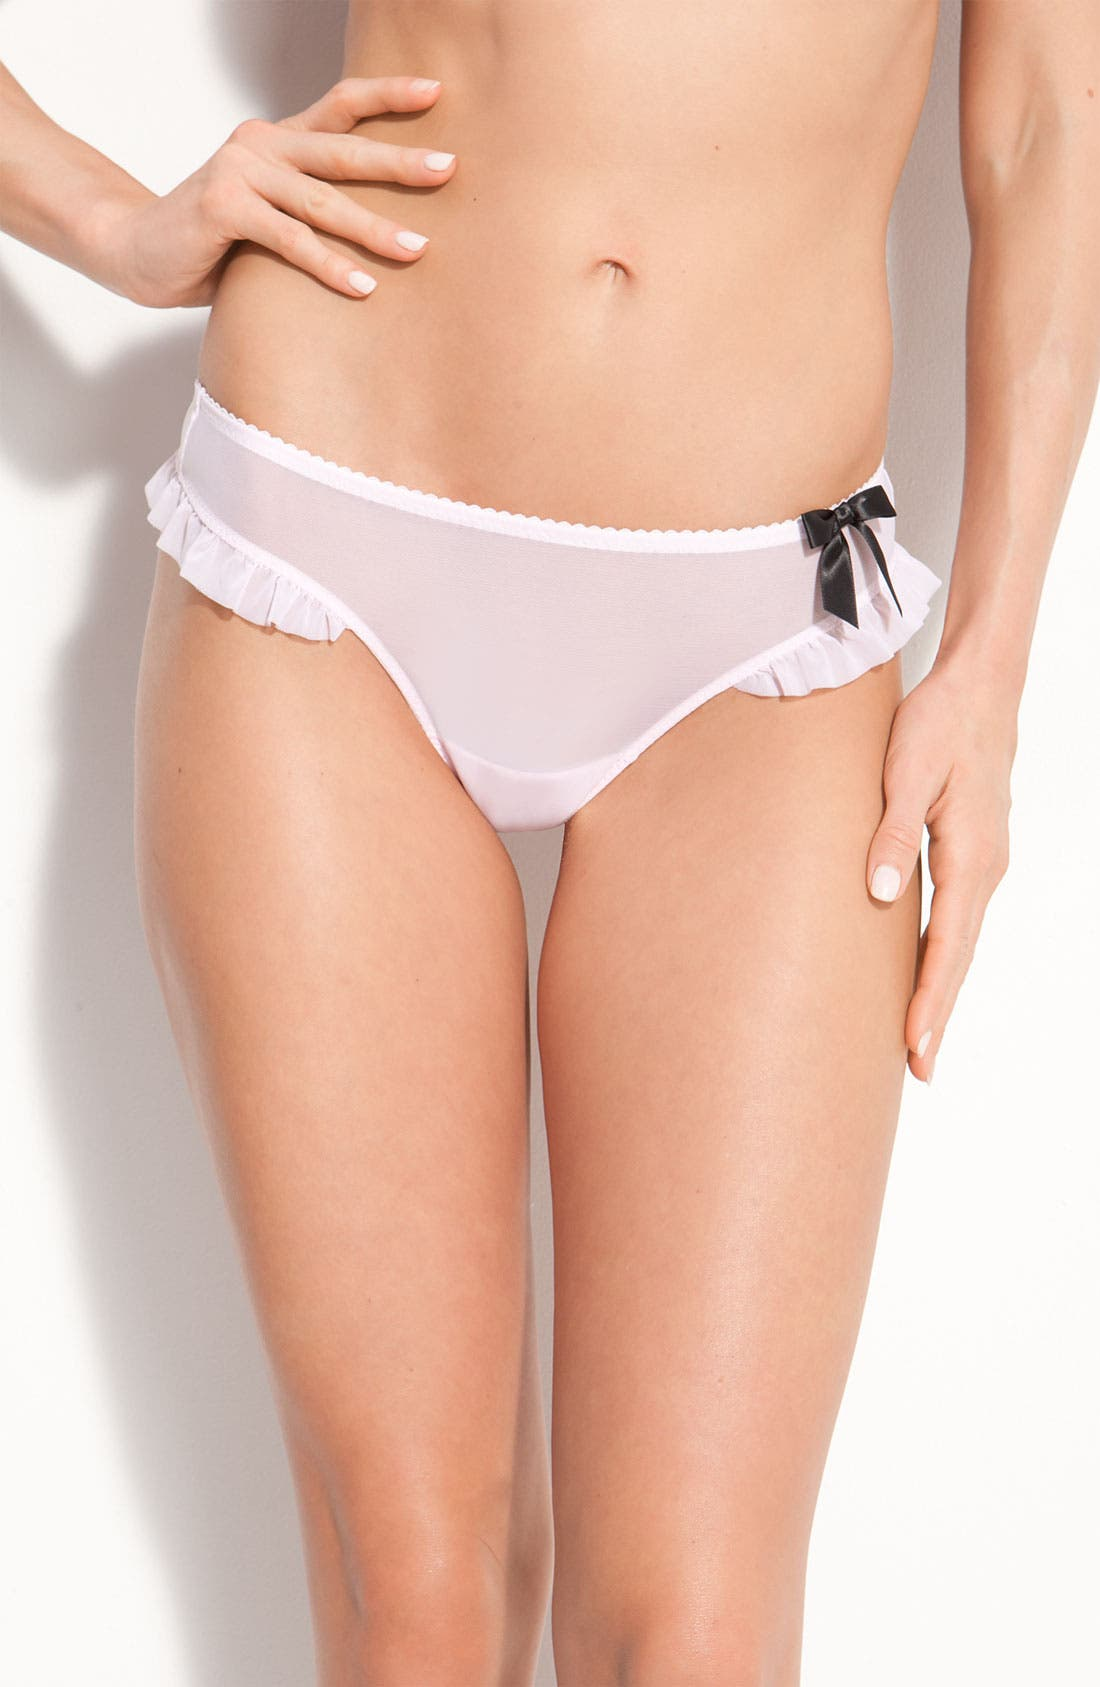 Alternate Image 1 Selected - Betsey Johnson Ruffle Mesh Thong (3 for $27)